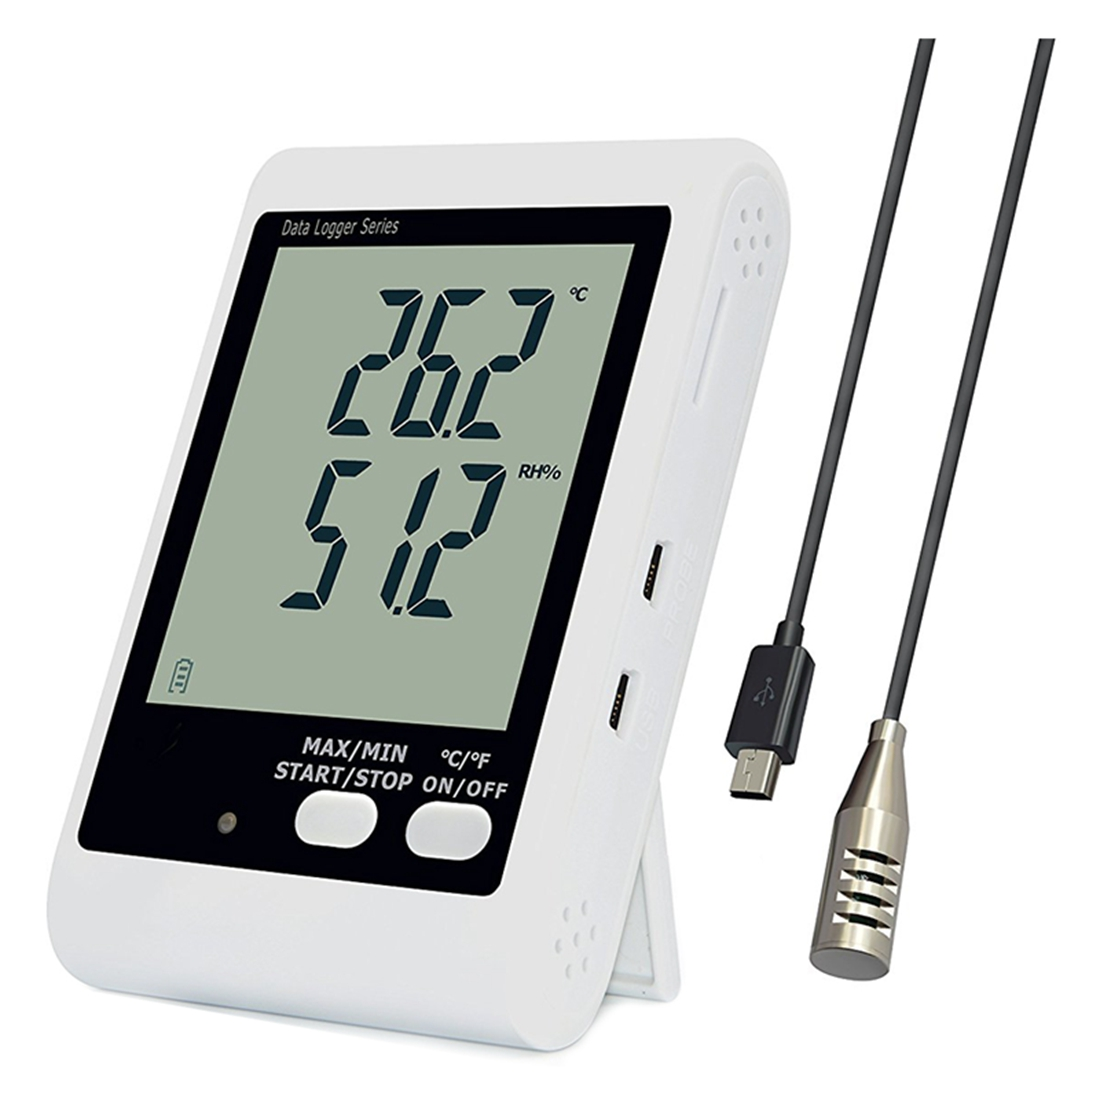 DSHA YOWEXA Temperature and humidity loggers with Backlit LCD Display and Sound-light Alarm, 3m External Probe Included free shipping and low temperature alarm 634f 220v electron temperature alarm sound and light alarm thermostats